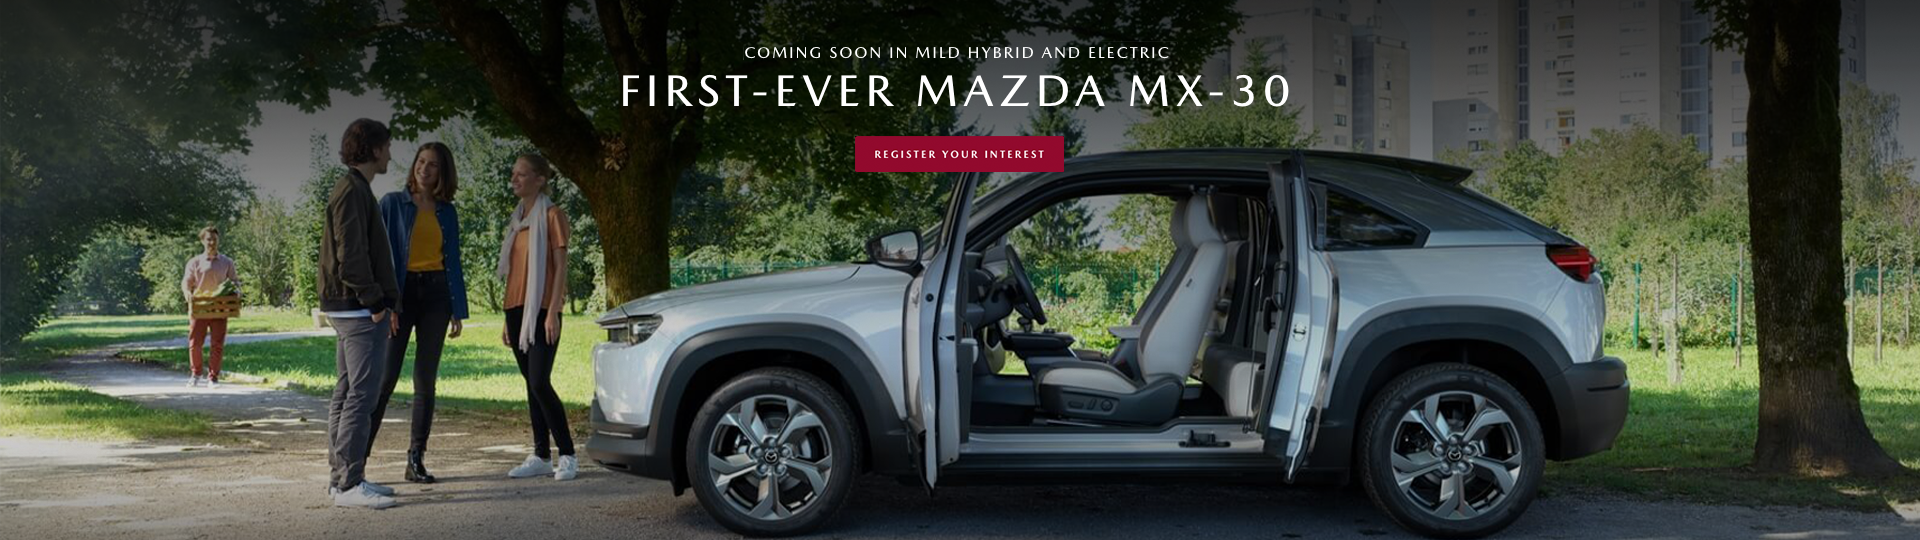 Coming Soon: First Ever Mazda MX-30, a uniquely Mazda experience